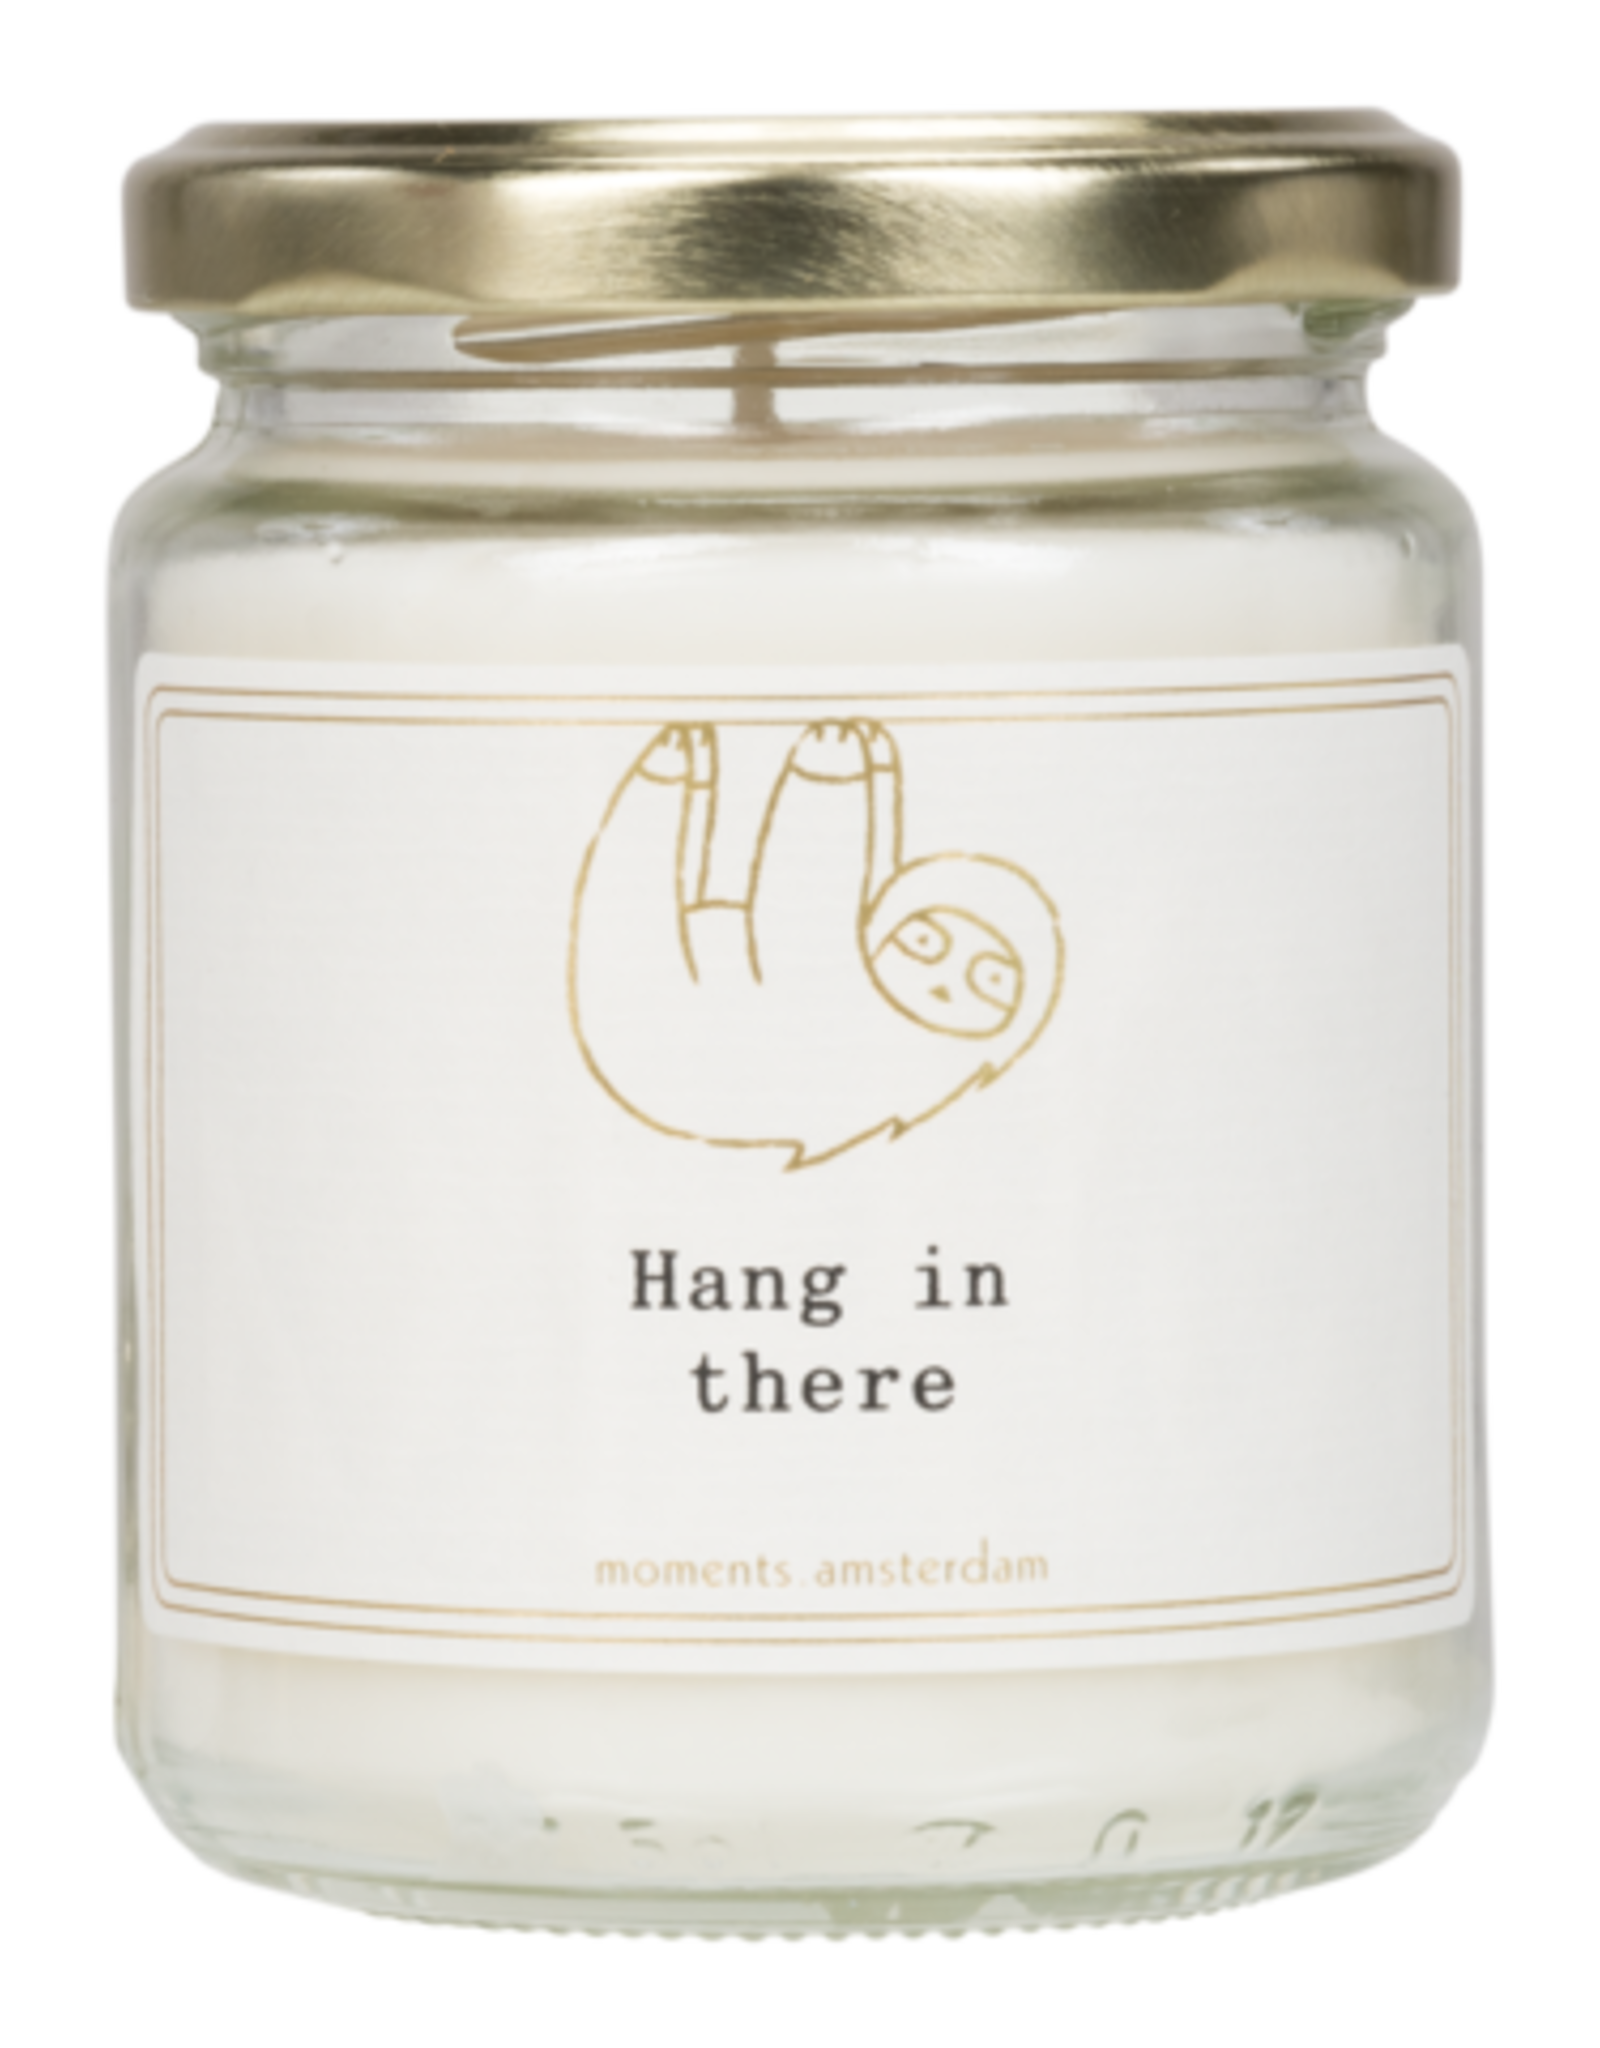 Moments - Little Candle - Hang in there